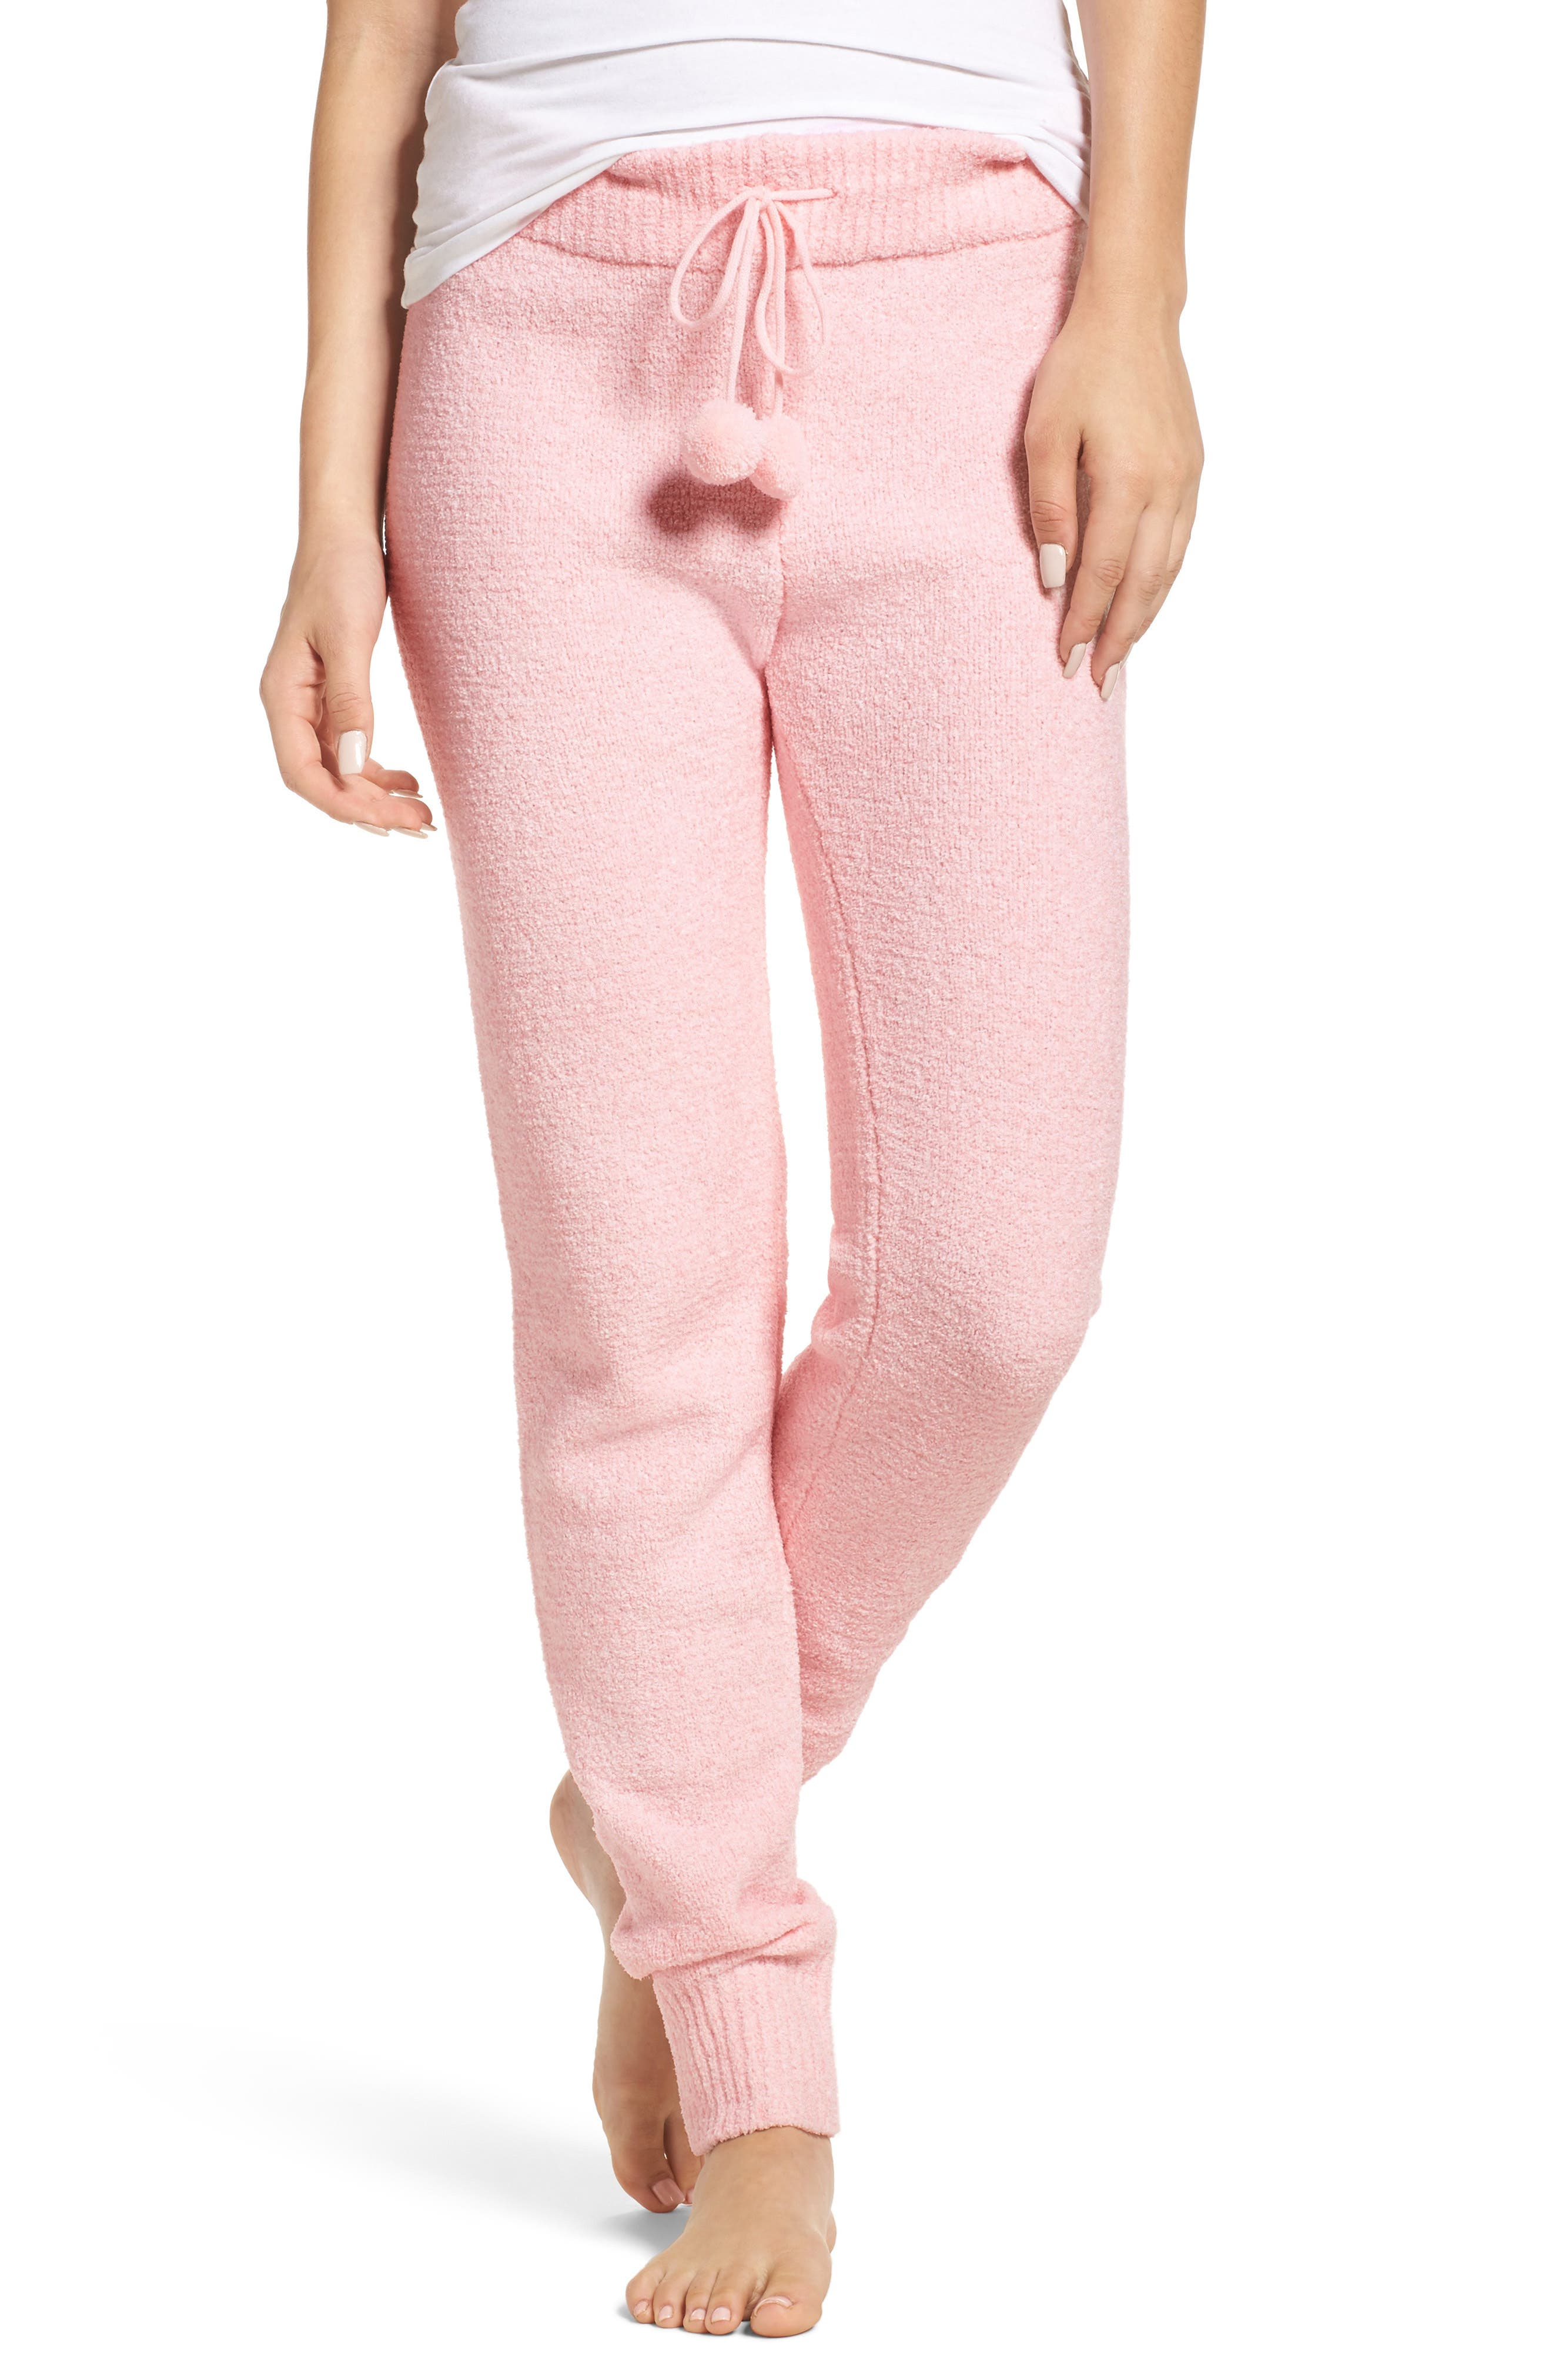 Honeydew Intimates Marshmallow Lounge Jogger Pants